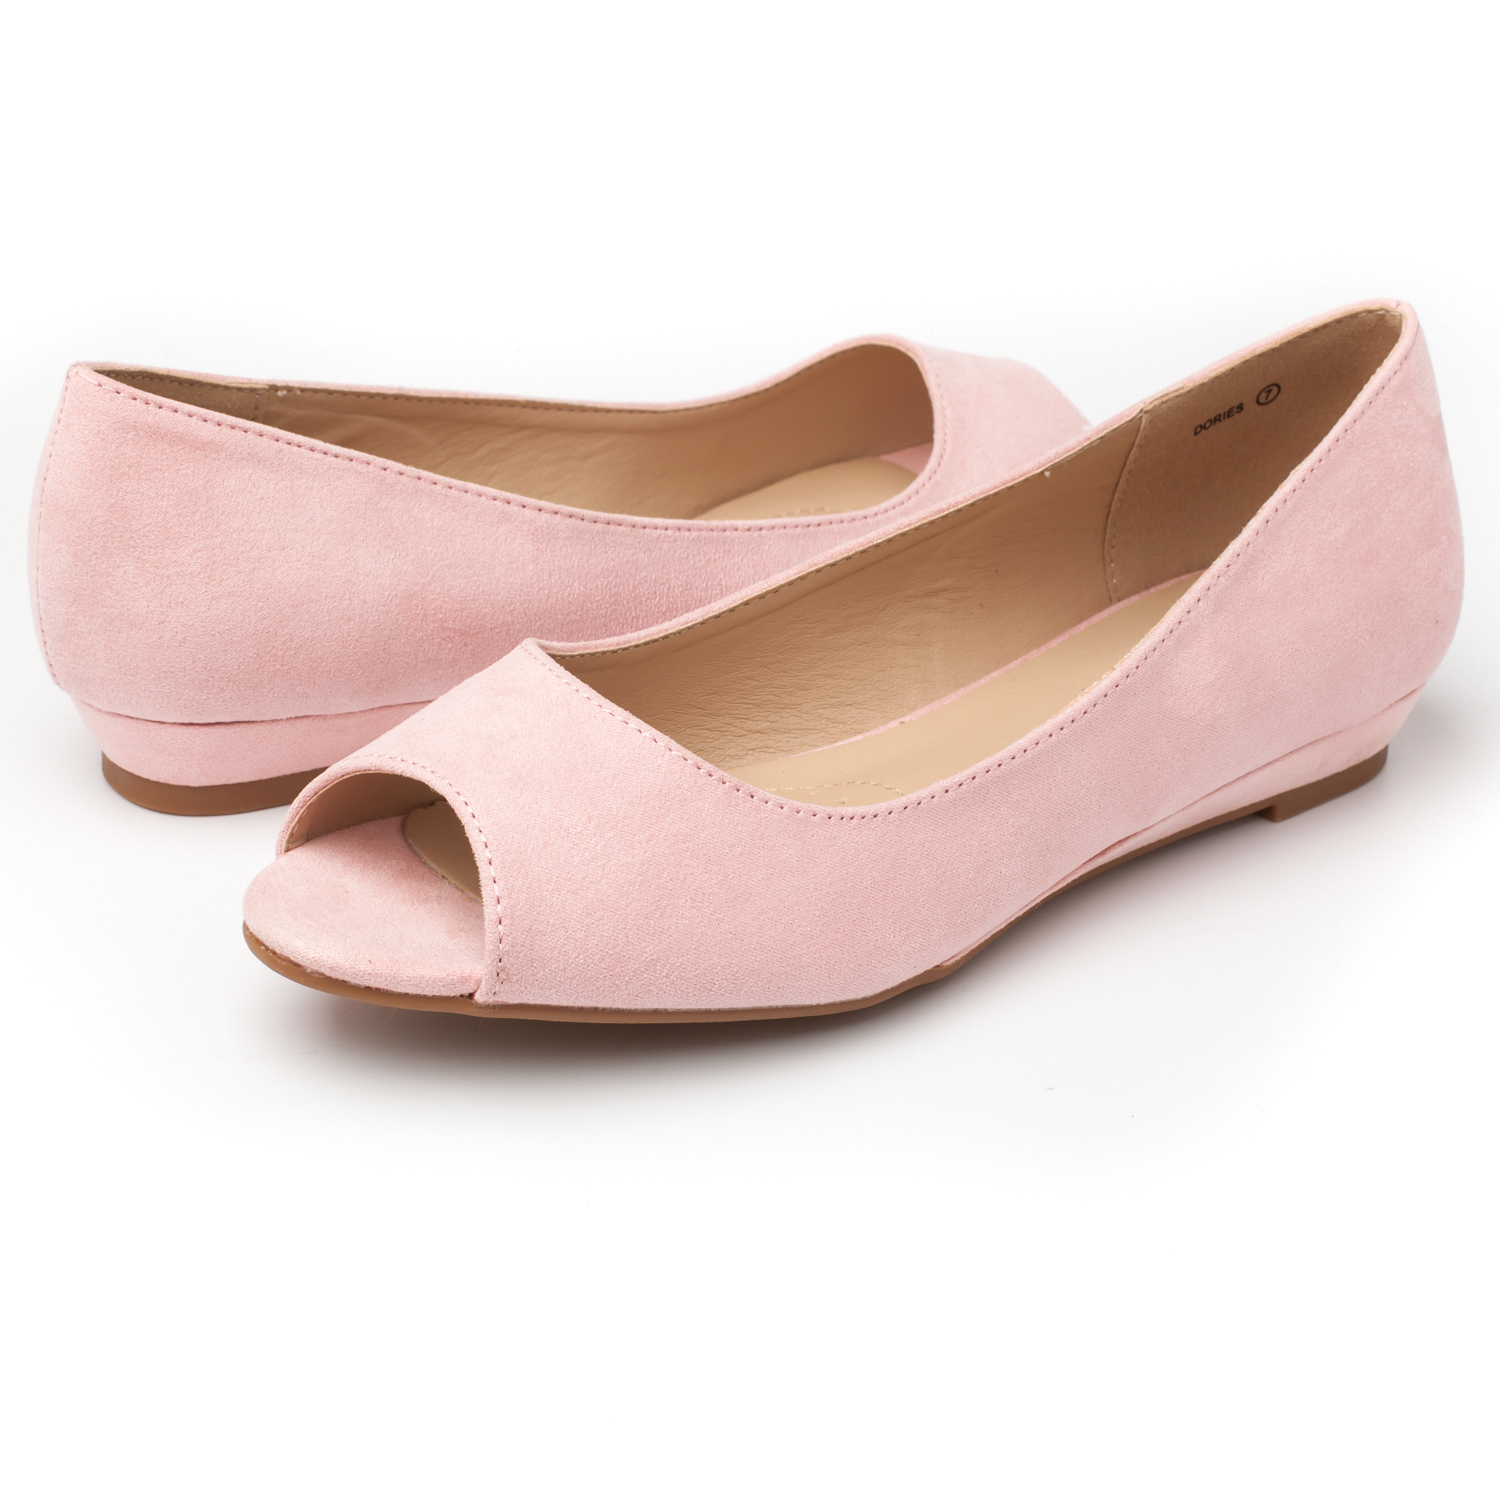 DREAM-PAIRS-Womens-Ballet-Flats-Low-Heel-Open-Toe-Slip-On-Dress-Flat-Shoes thumbnail 7